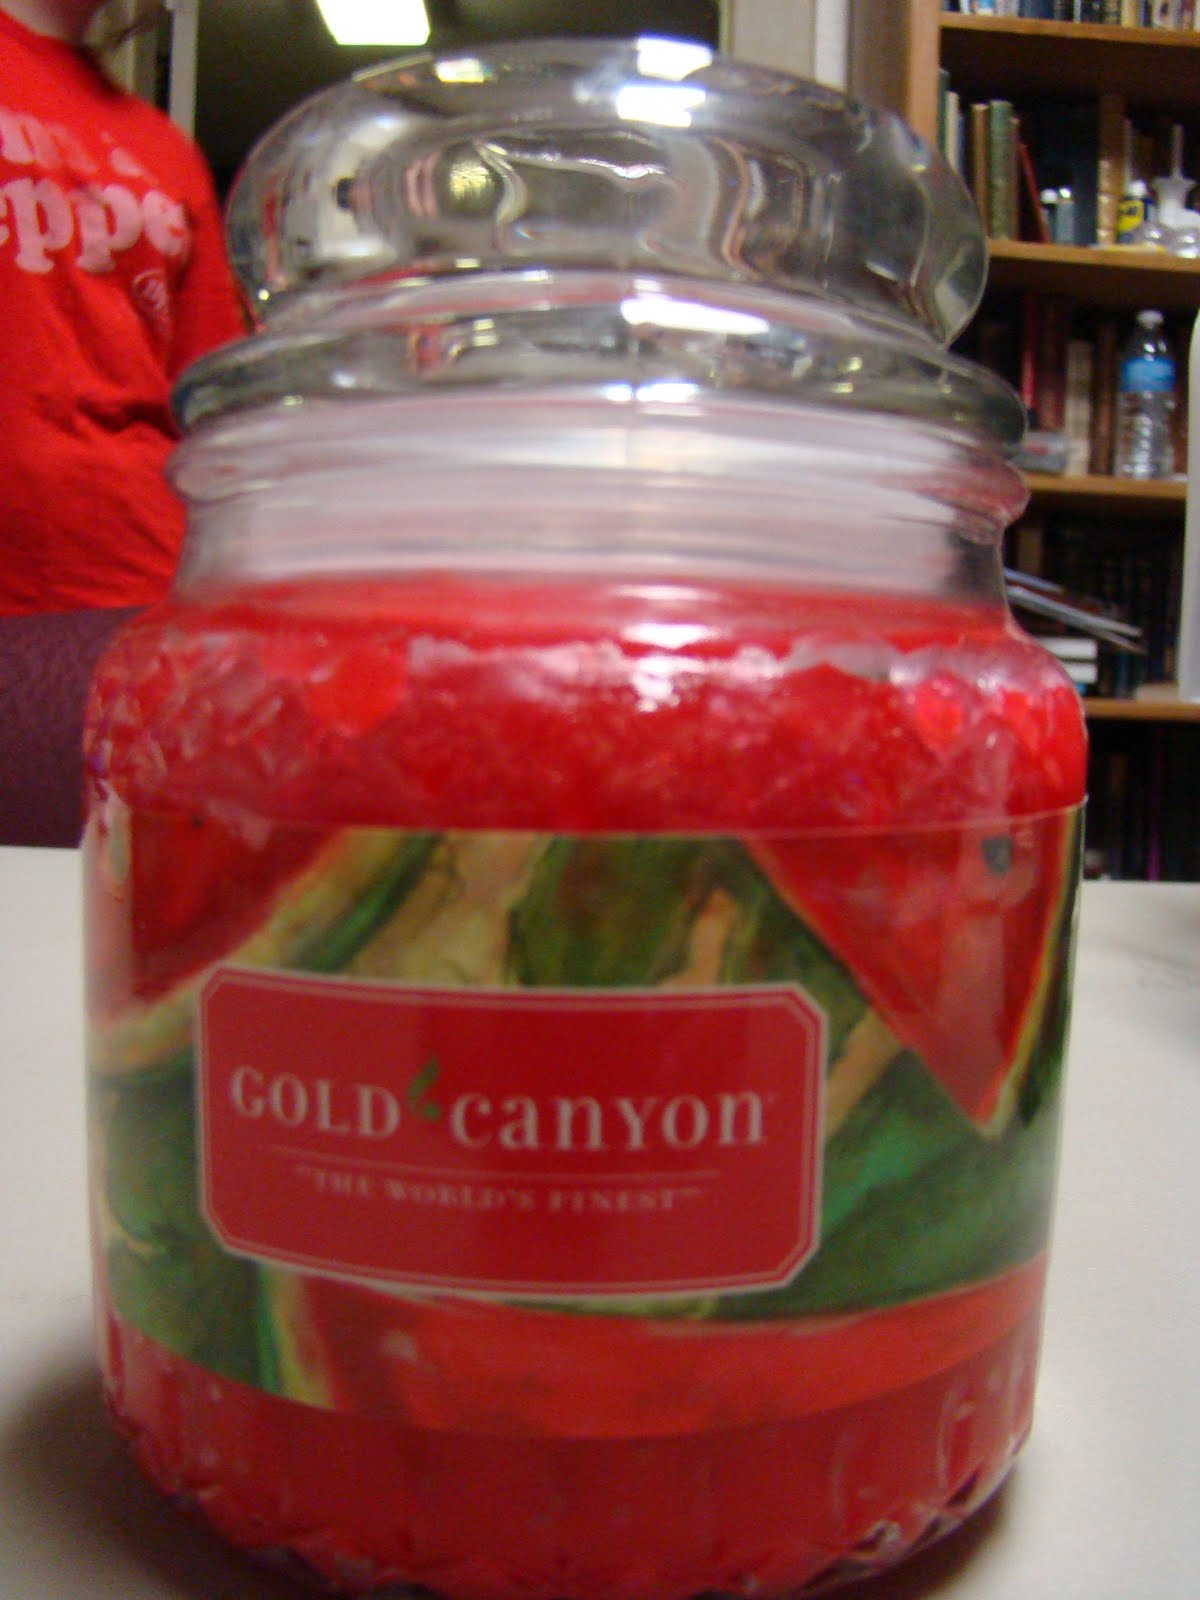 Most Fragrant Candles At The Fence Gold Canyon Candle Review And Giveaway